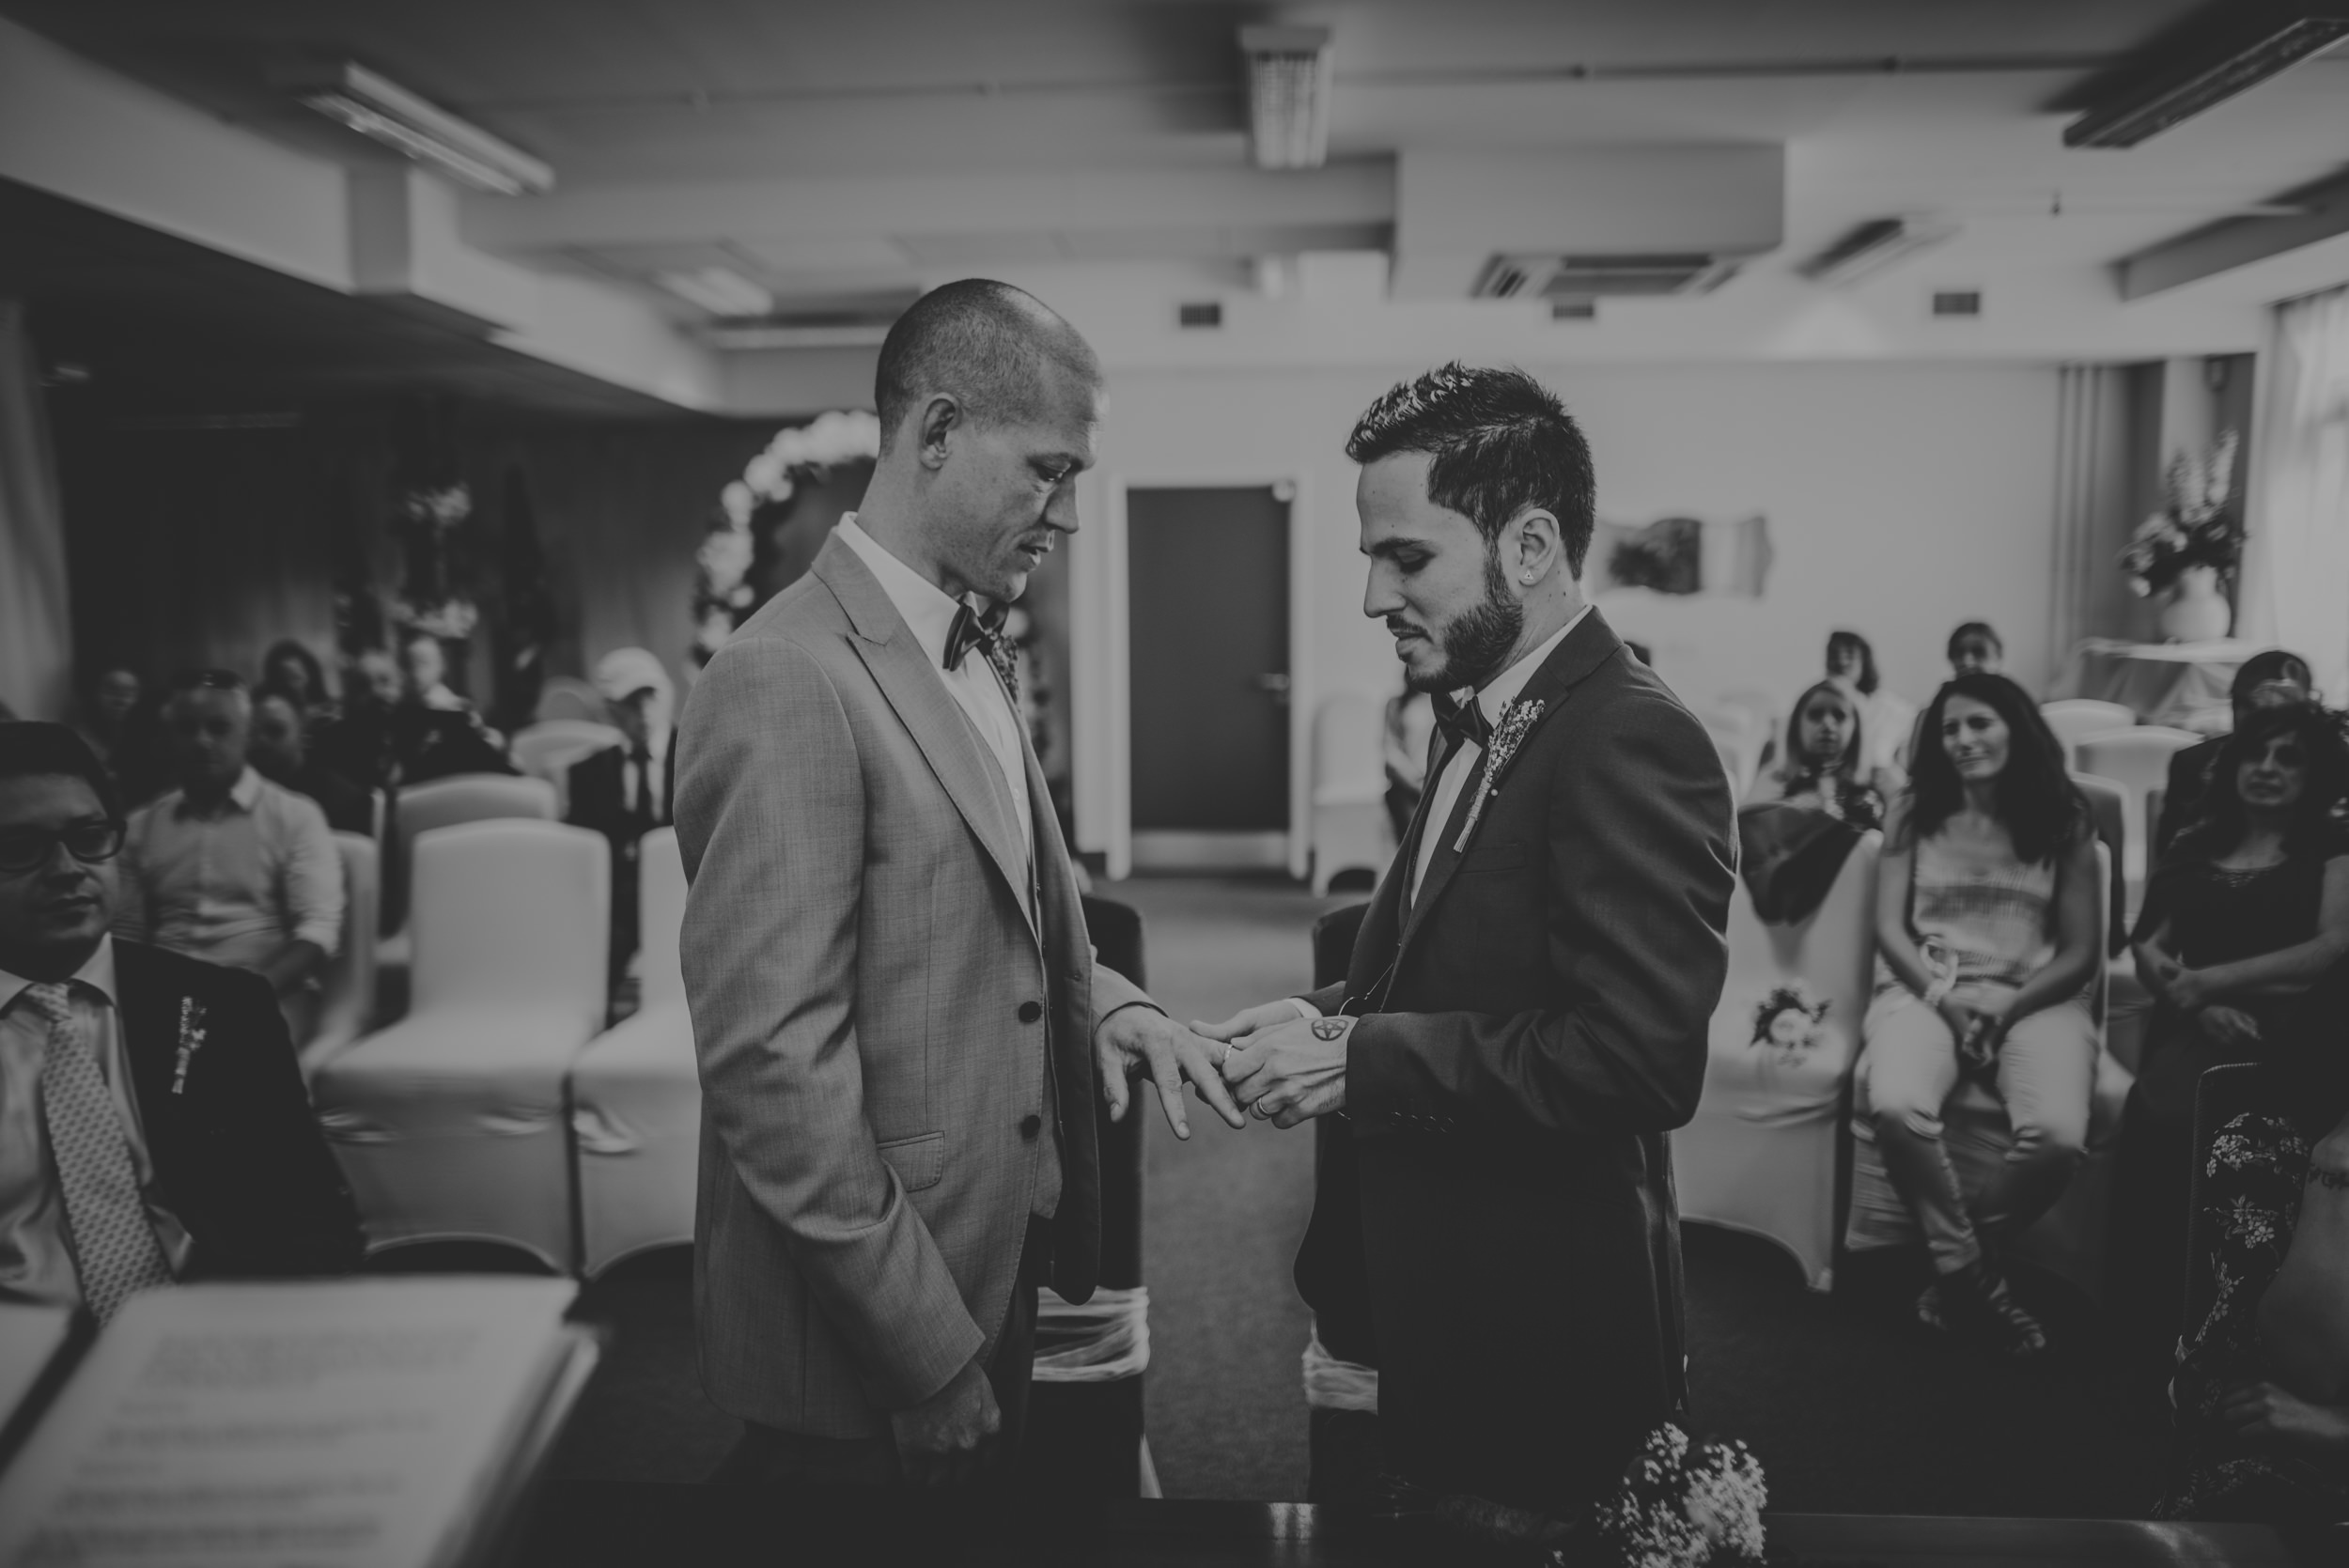 Rhys-and-Alex-Wedding-in-London-Manu-Mendoza-Wedding-Photography-140.jpg